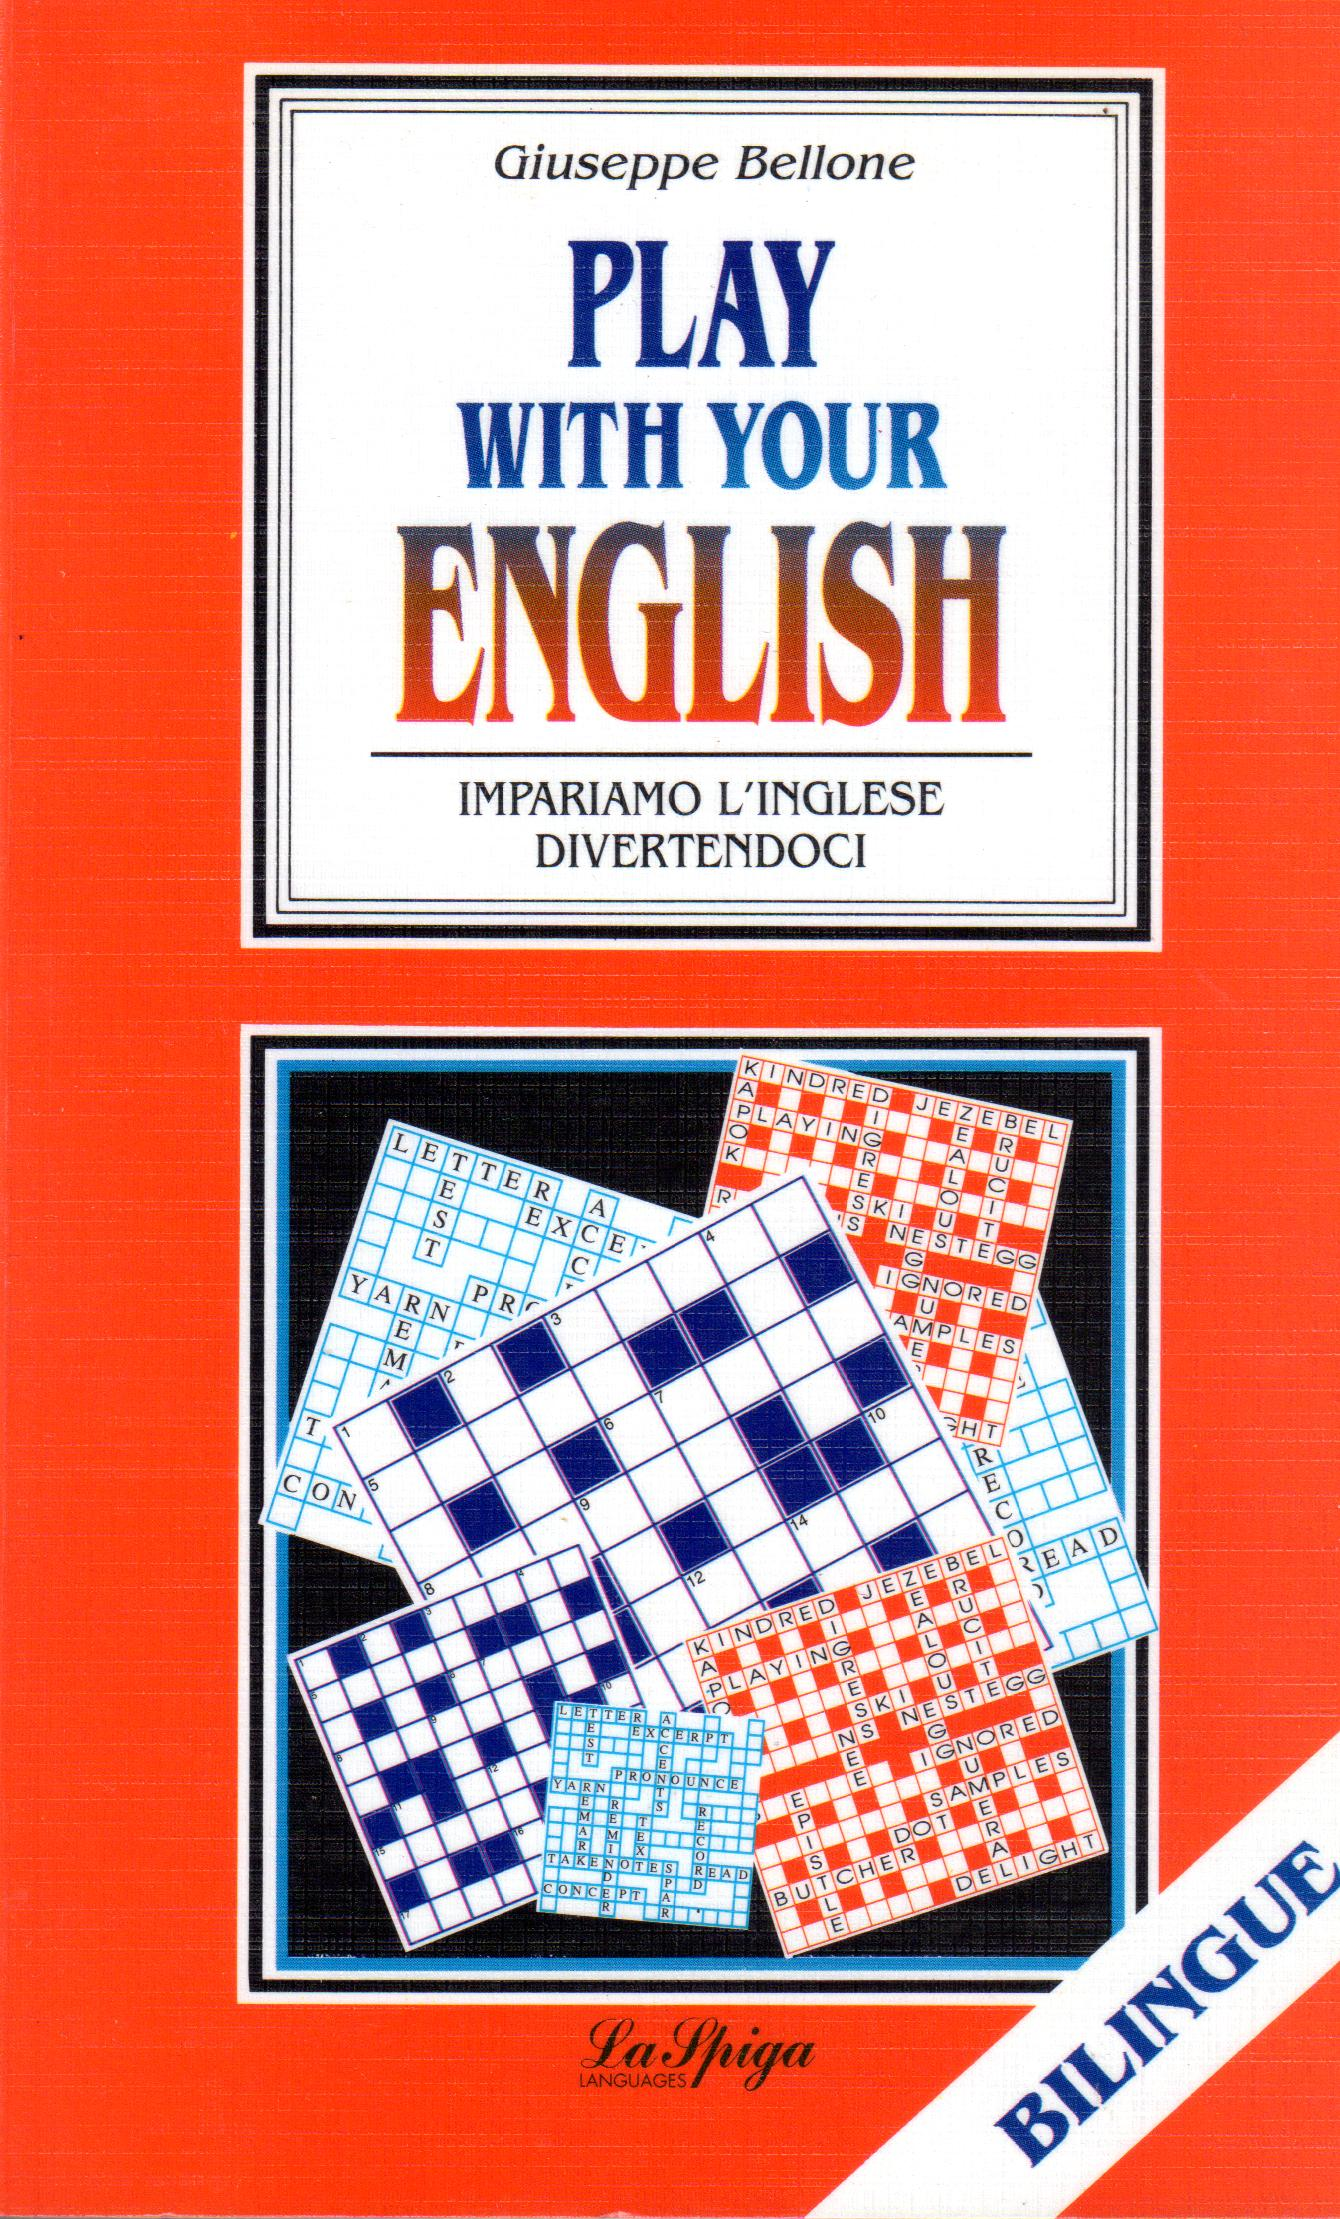 Image of Play with your english